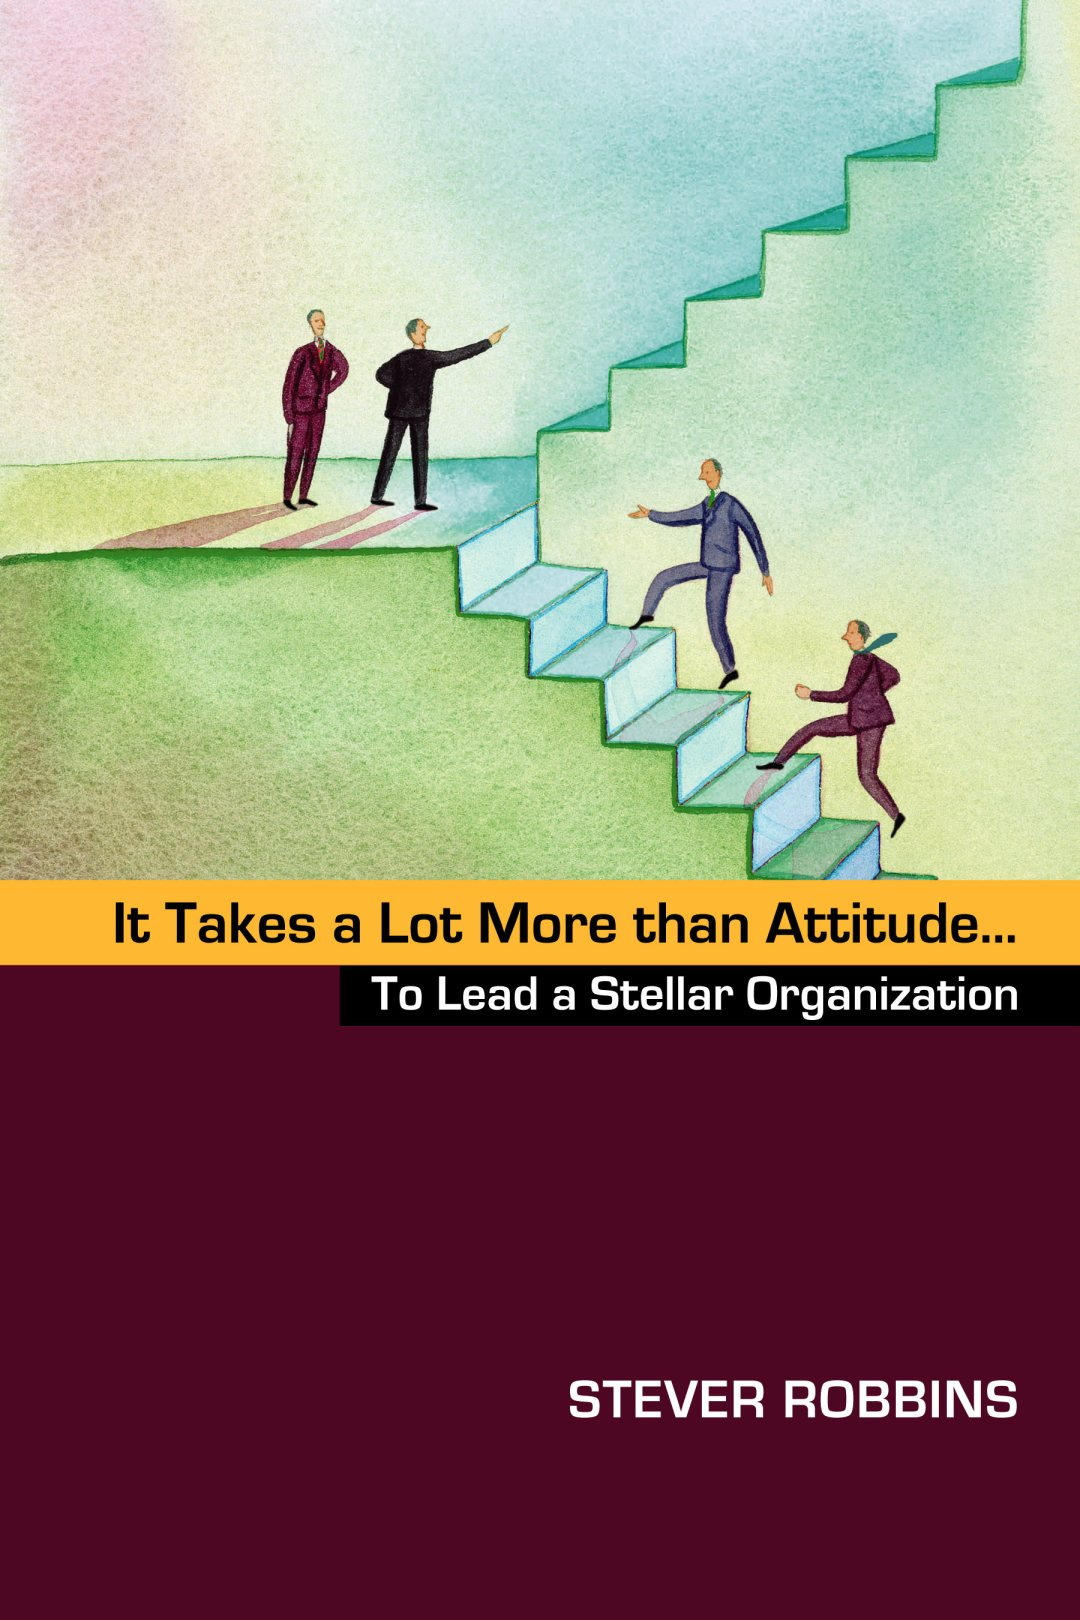 It Takes a Lot More than Attitude...to Build a Stellar Organization cover